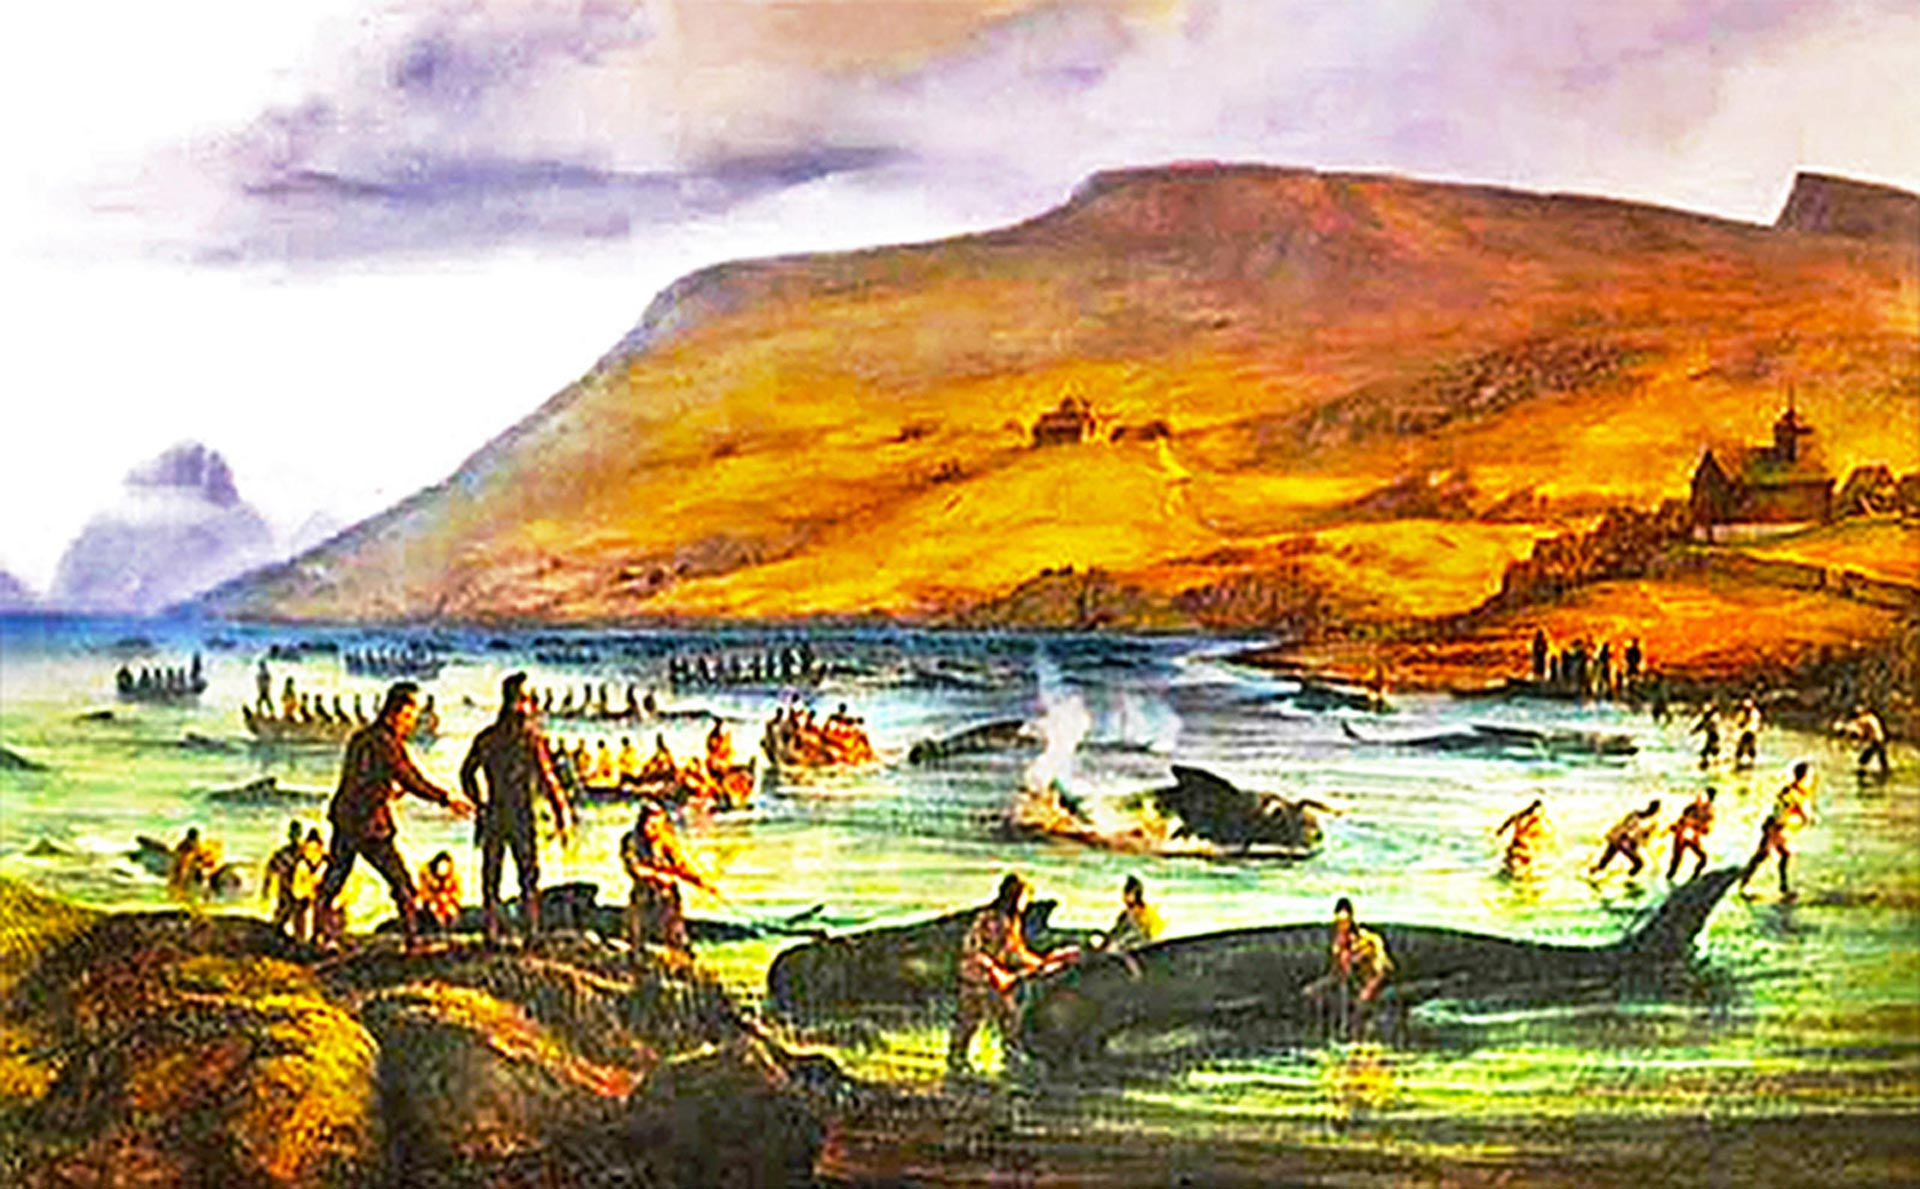 "Pilot whale hunt dates back to the beginning of the Norse settlement of the Faroes c. 1200 years ago. Screenshot from the book ""Pilot Whaling in the Faroe Islands"" by Jóan Pauli Joensen."